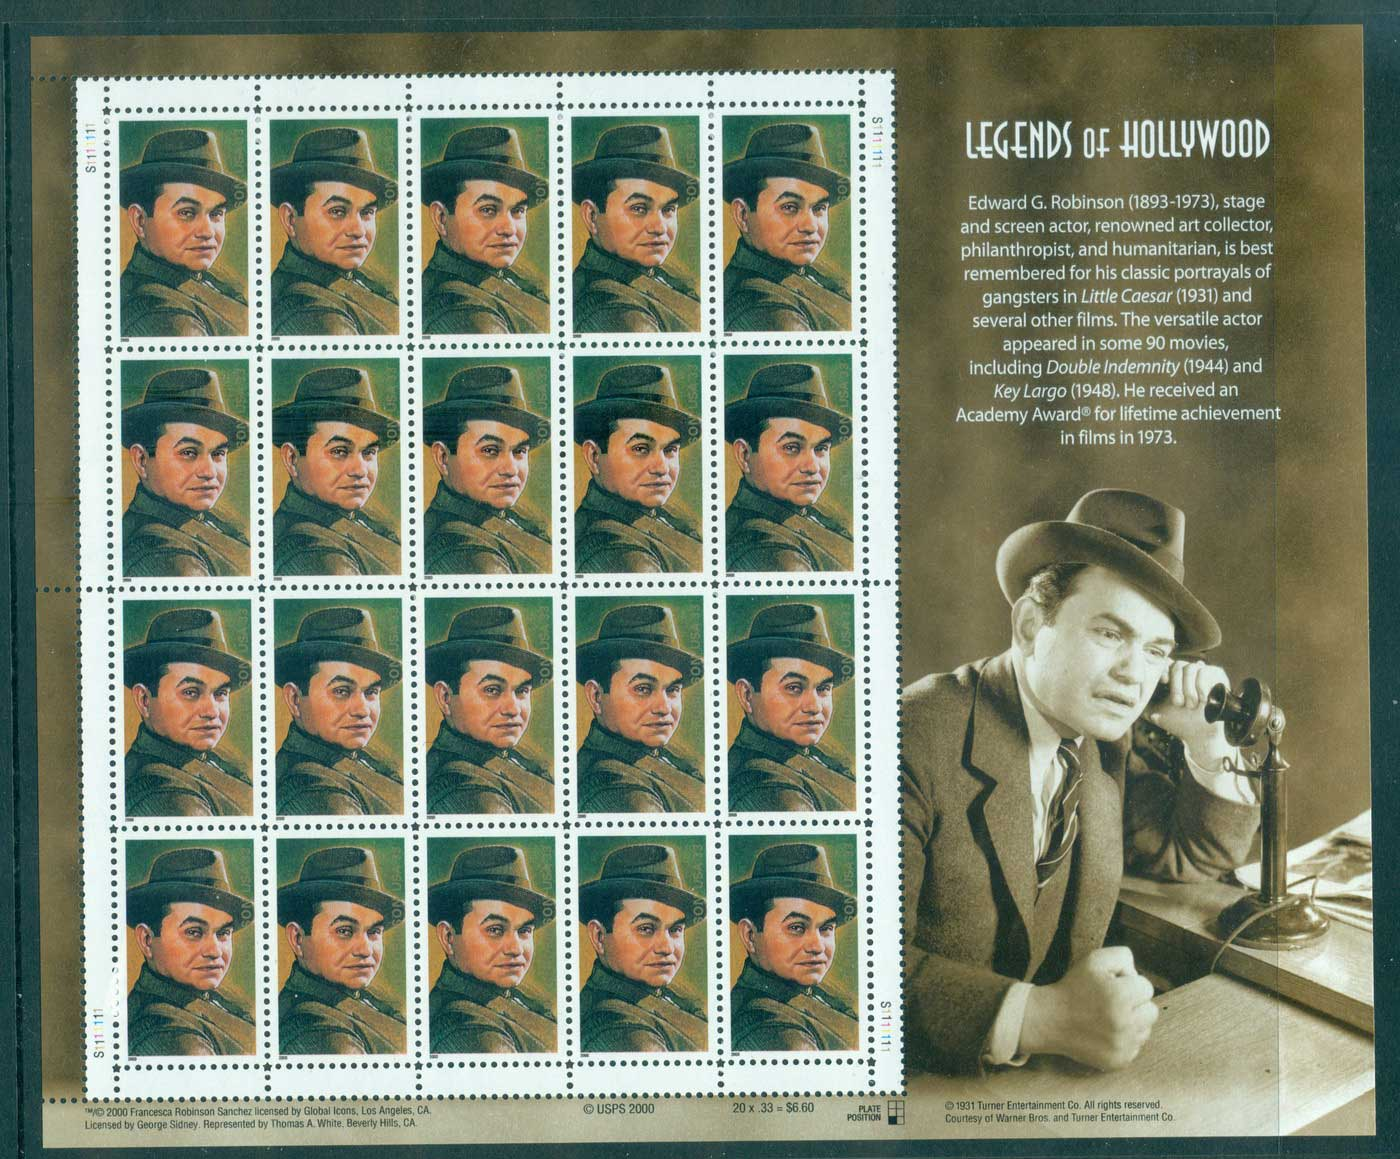 USA 2000 Sc#3446 Edward G. Robinson Pane 20 MUH lot33730